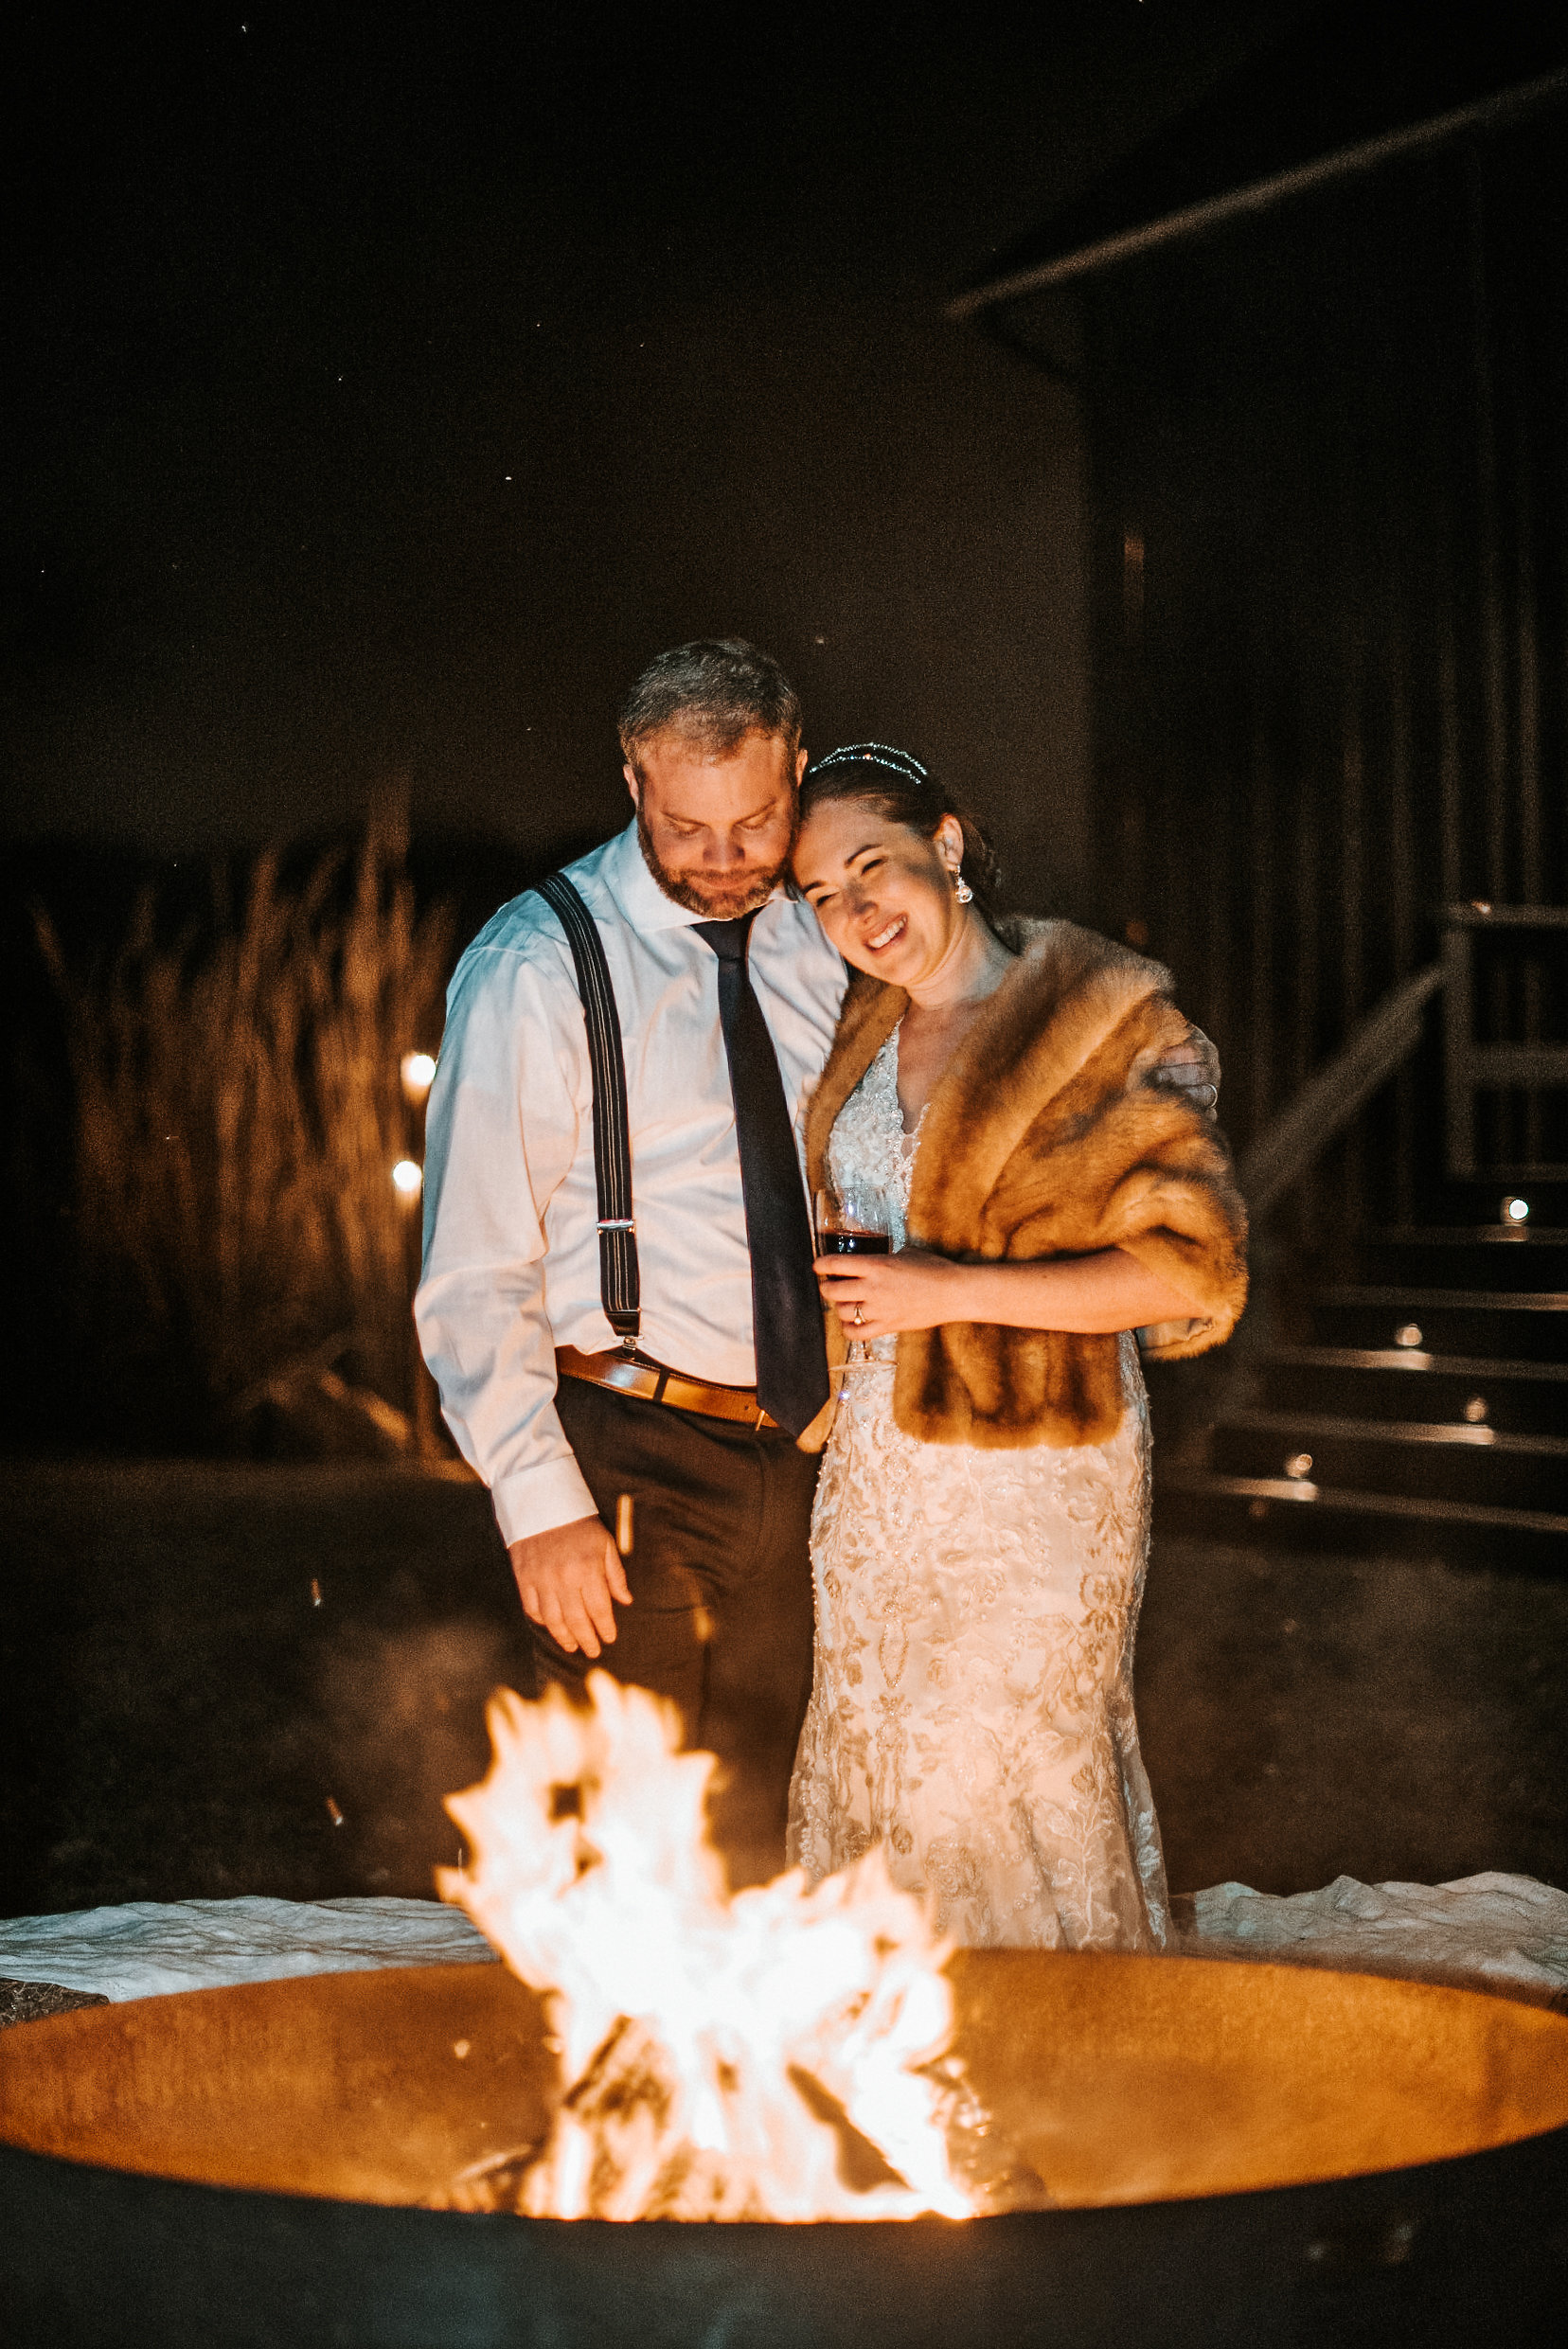 Bride and groom standing by fire